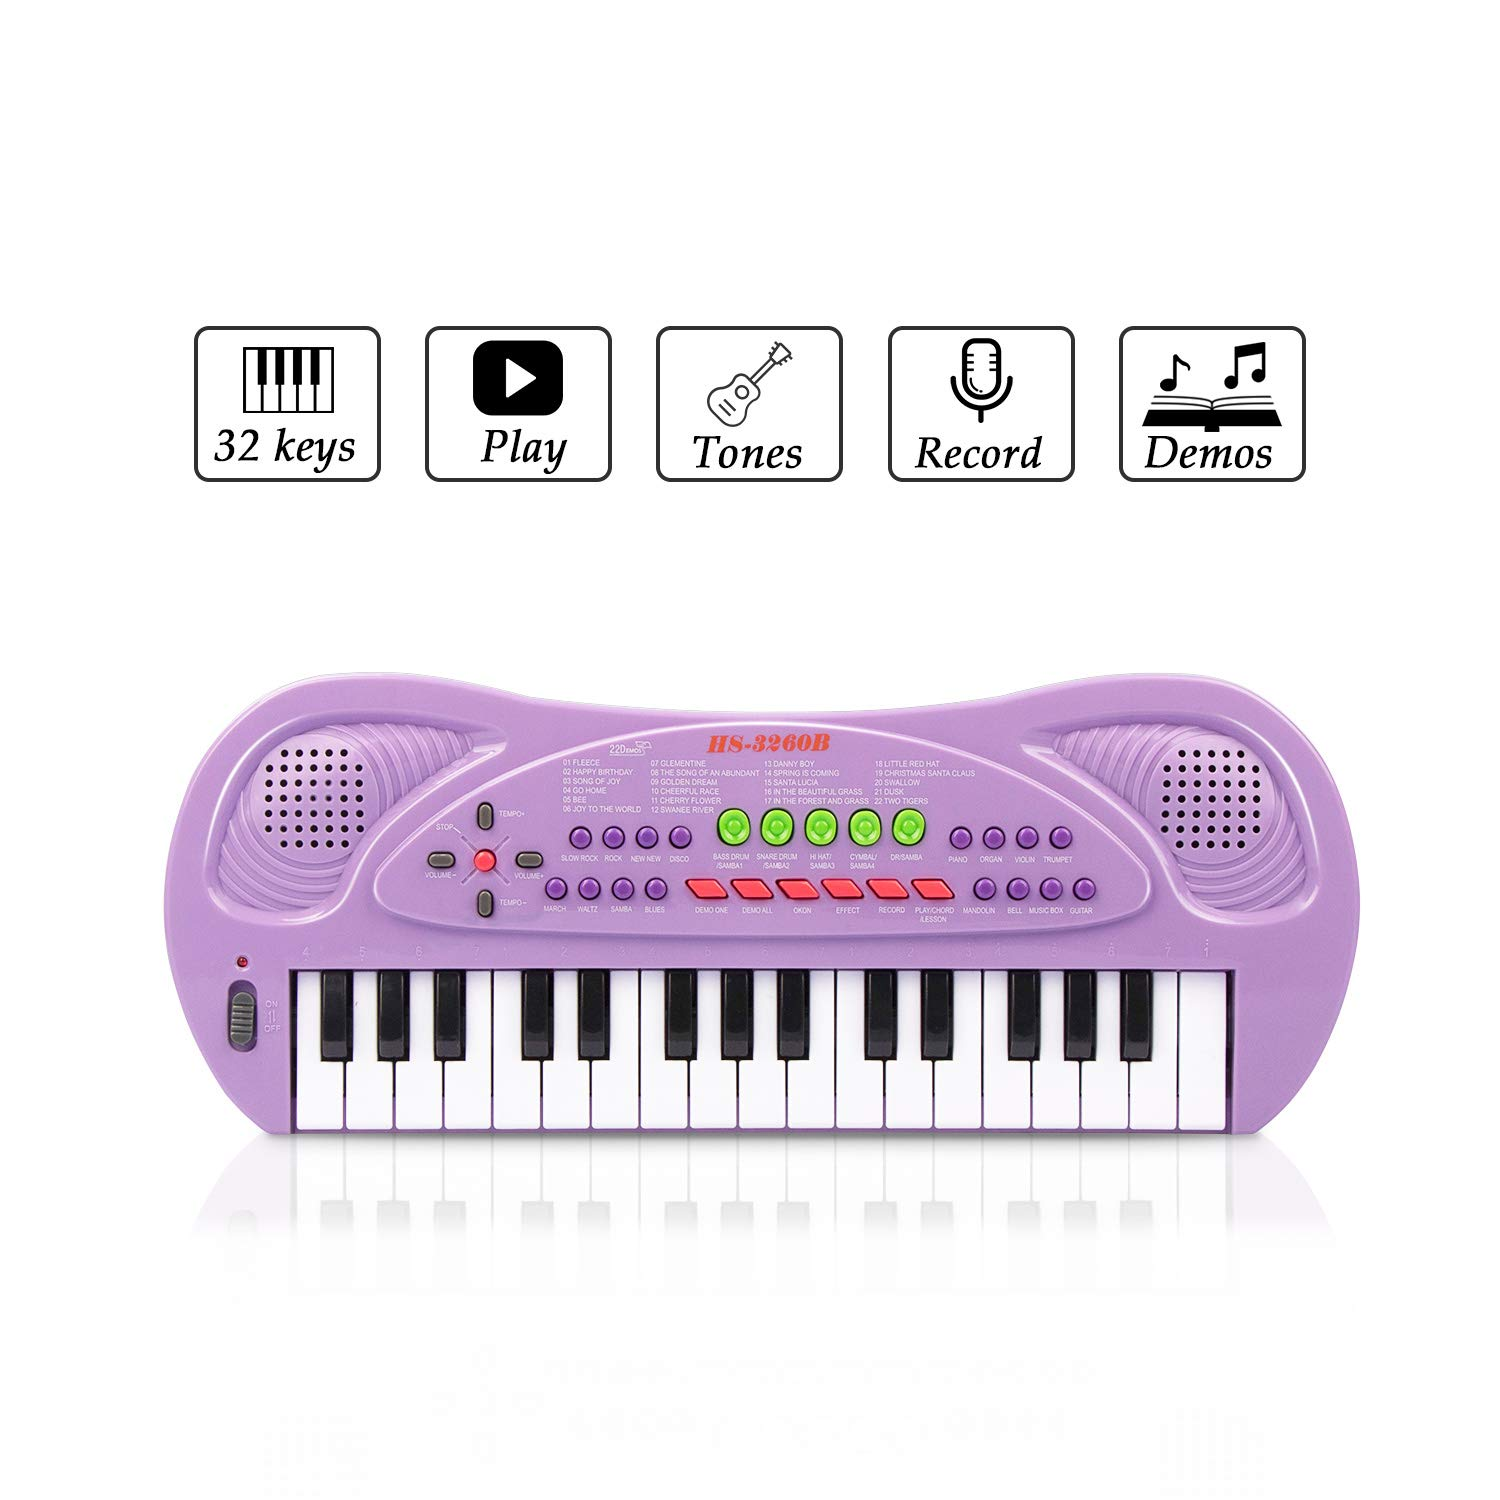 JINRUCHE Piano Keyboard Toy for Kids 32 Keys Multifunctional Toy Piano with Microphone for Baby Birthday Gift Toy for 2-6 Year Old Toddlers (Purple)